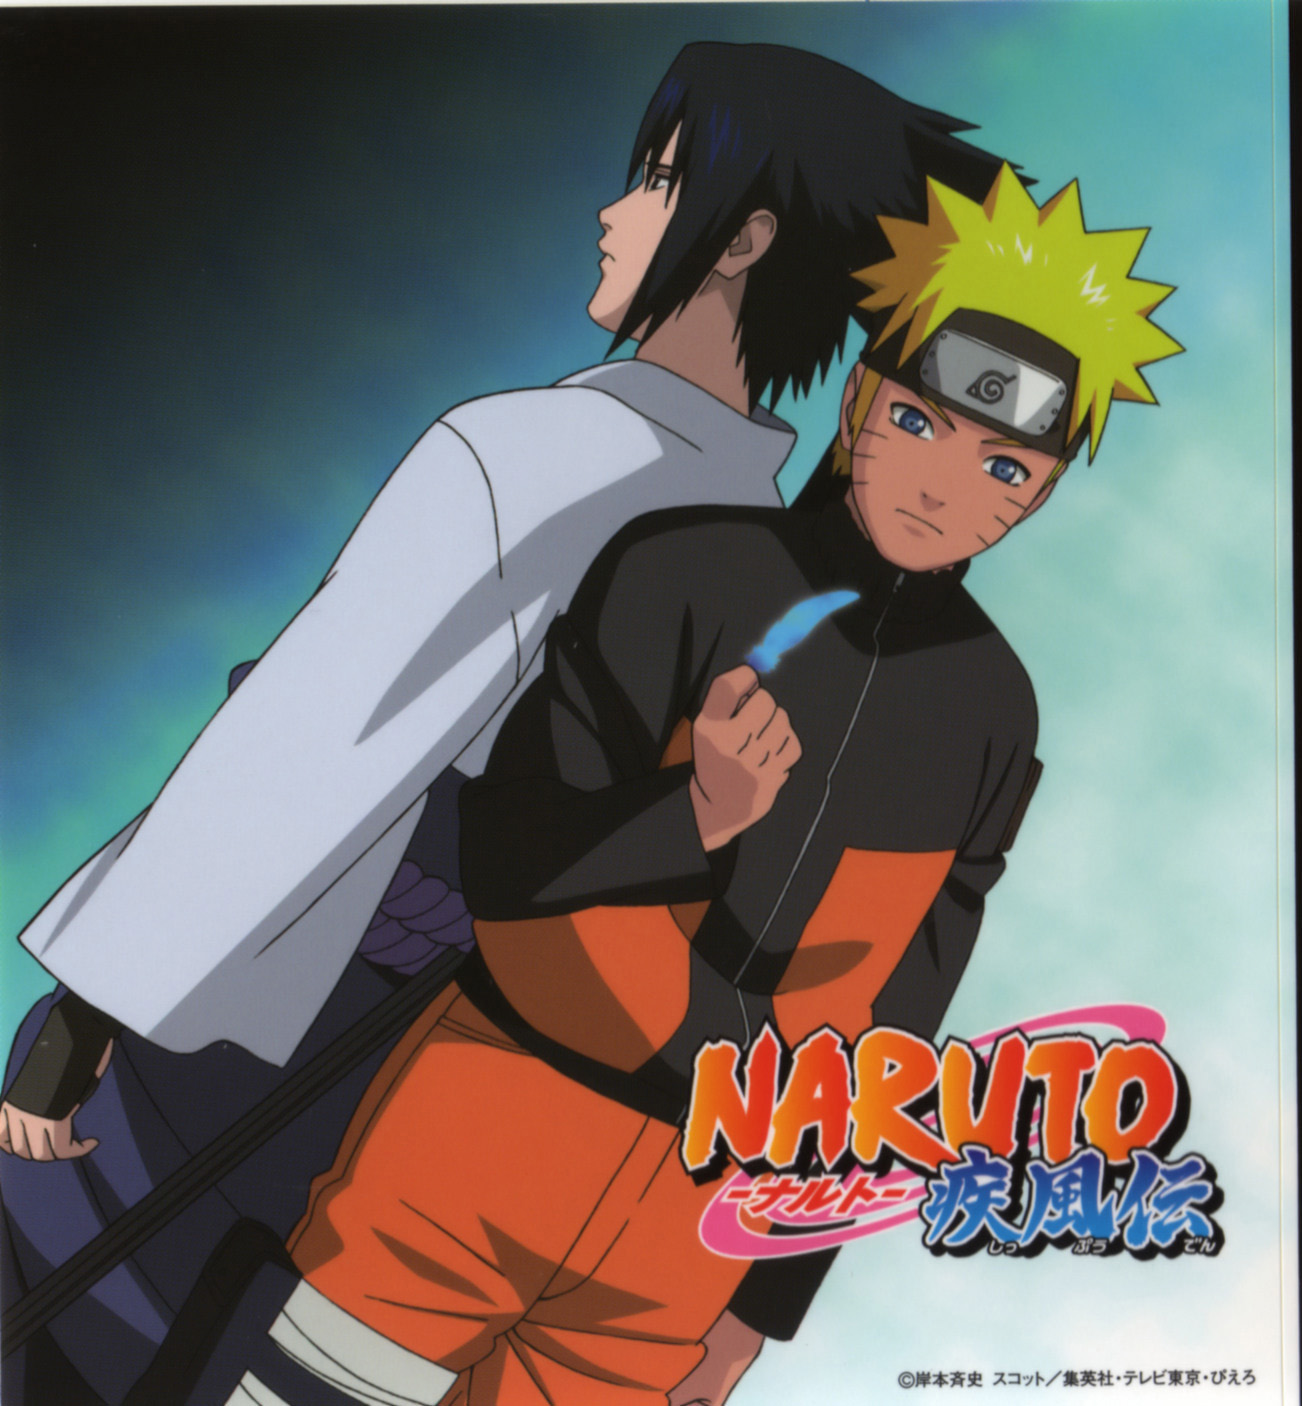 Naruto and Sasuke in Naruto Shippuden Promo Art